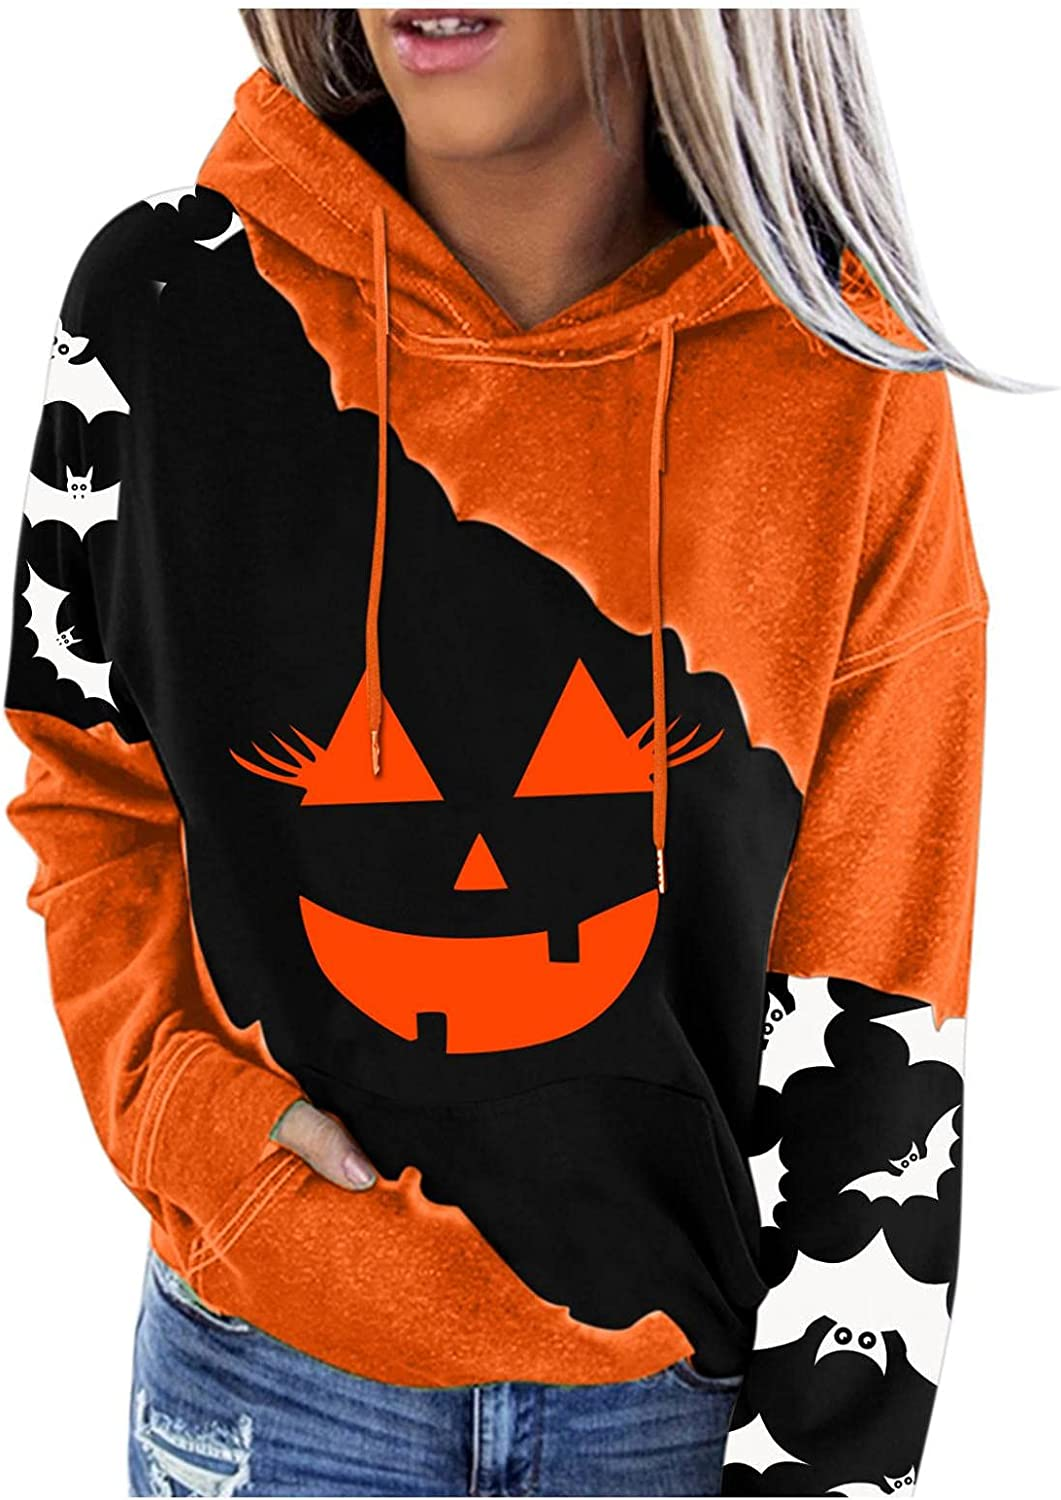 ONHUON Hoodies for Women Pullover,Womens Casual Color Block Halloween Graphic Sweatshirts Drawstring Hooded Tops Shirts